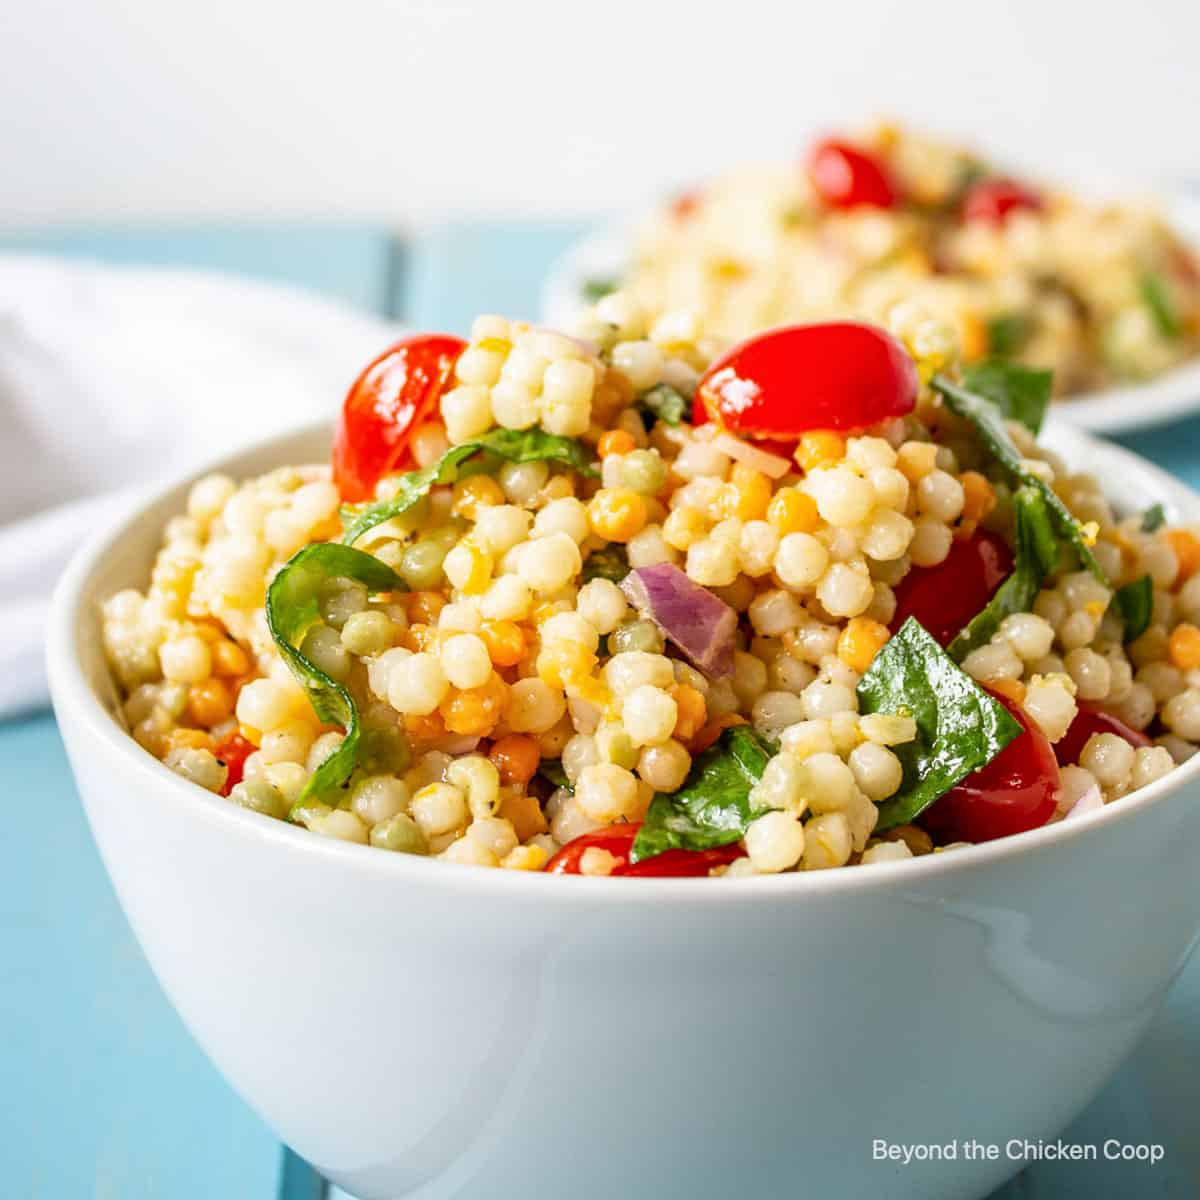 A couscous salad with tomatoes and spinach.